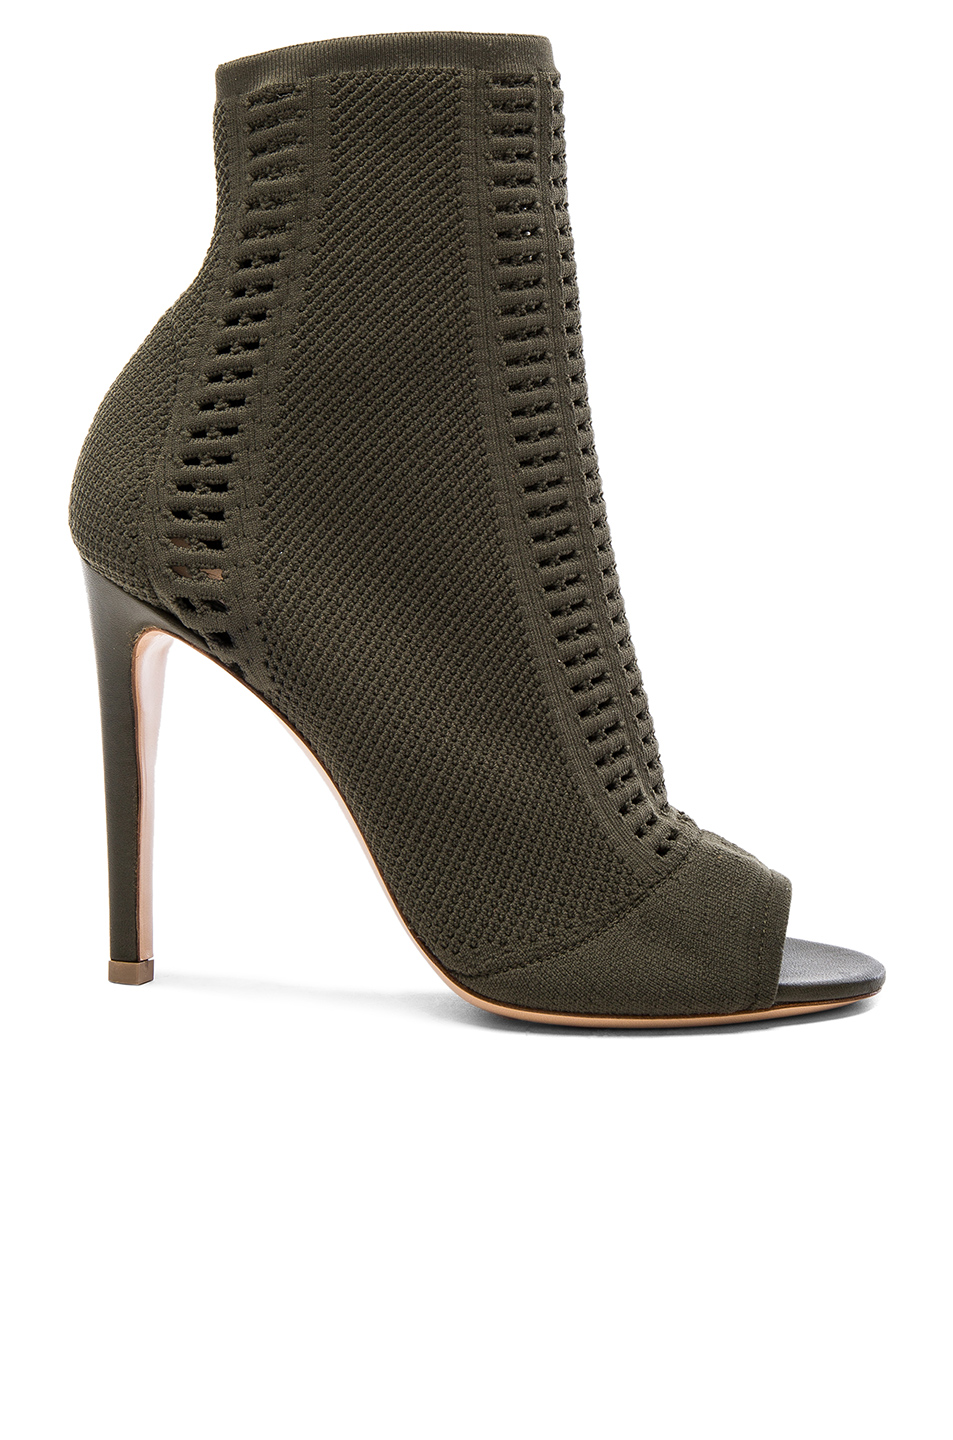 Gianvito Rossi Knit Vires Booties In Green